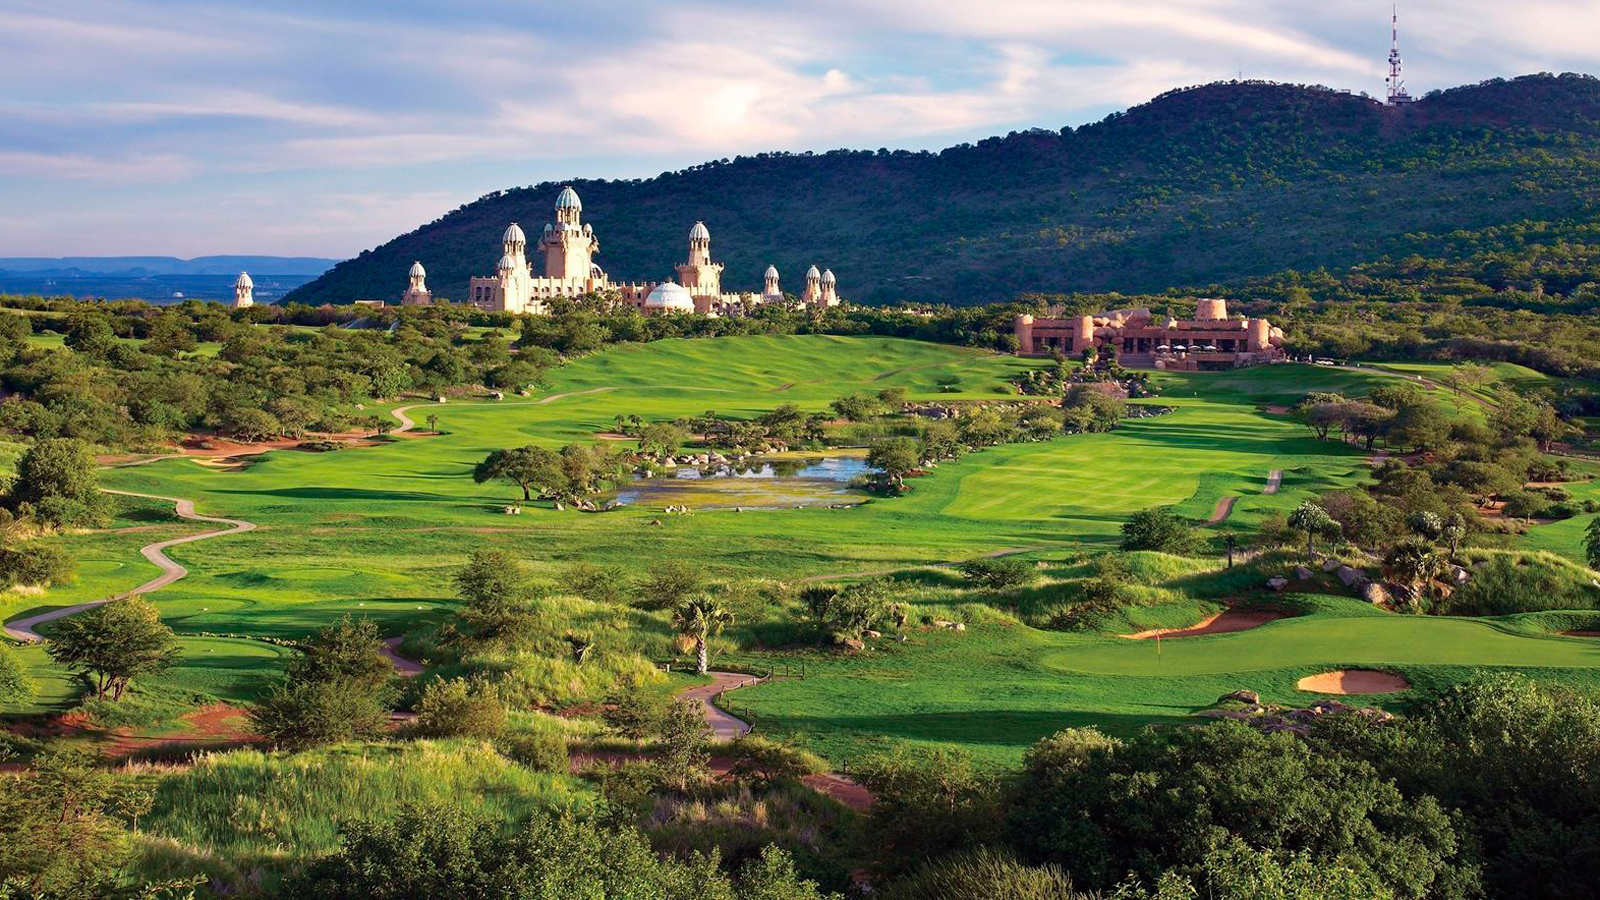 Lost City Golf Course Zuid-Afrika